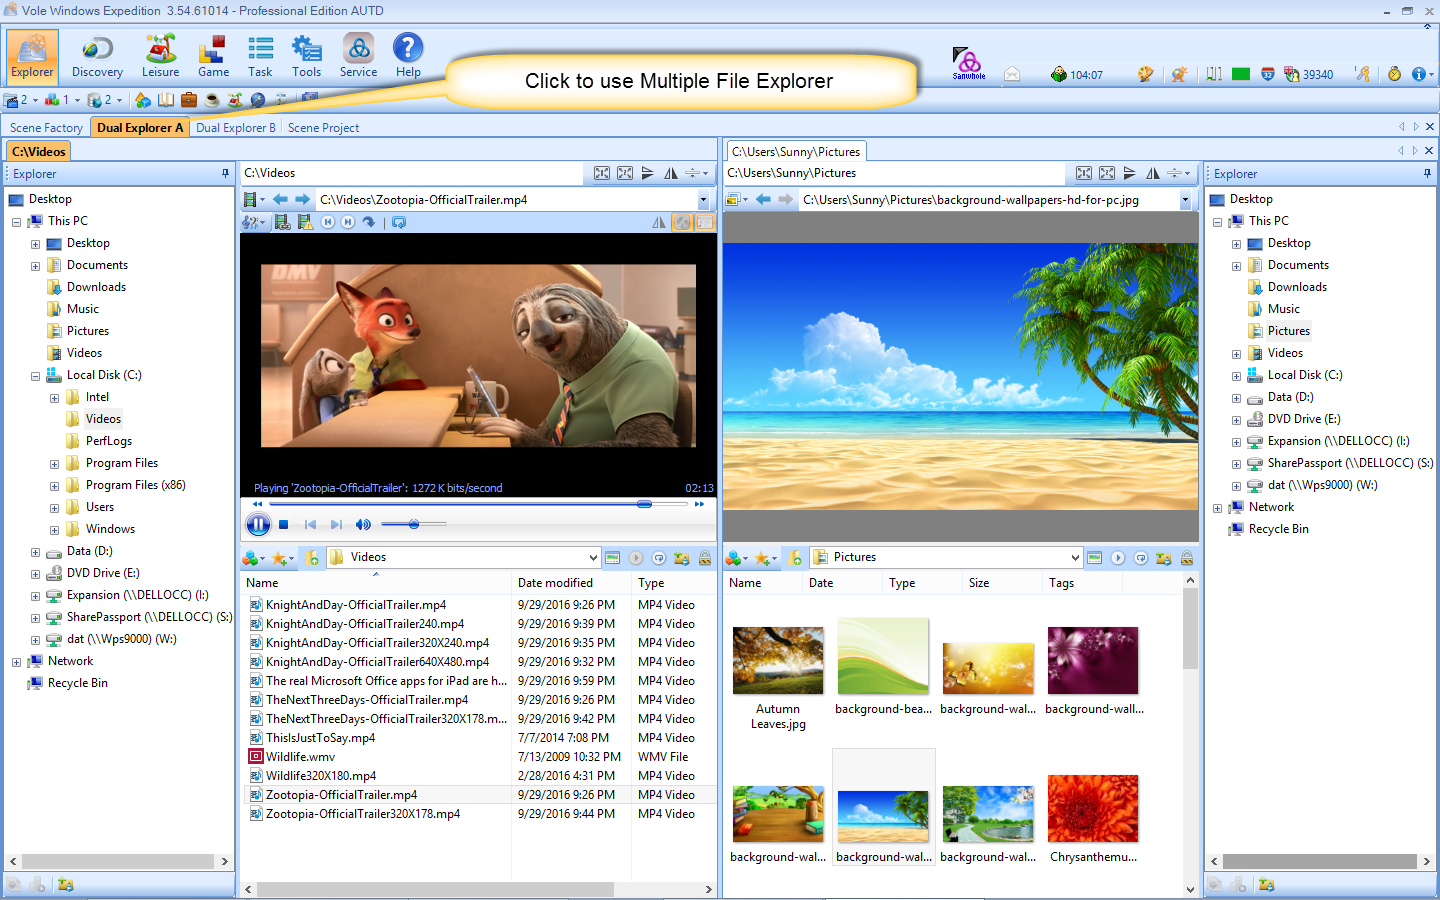 Vole Windows Expedition Ultimate Edition Screenshot 11